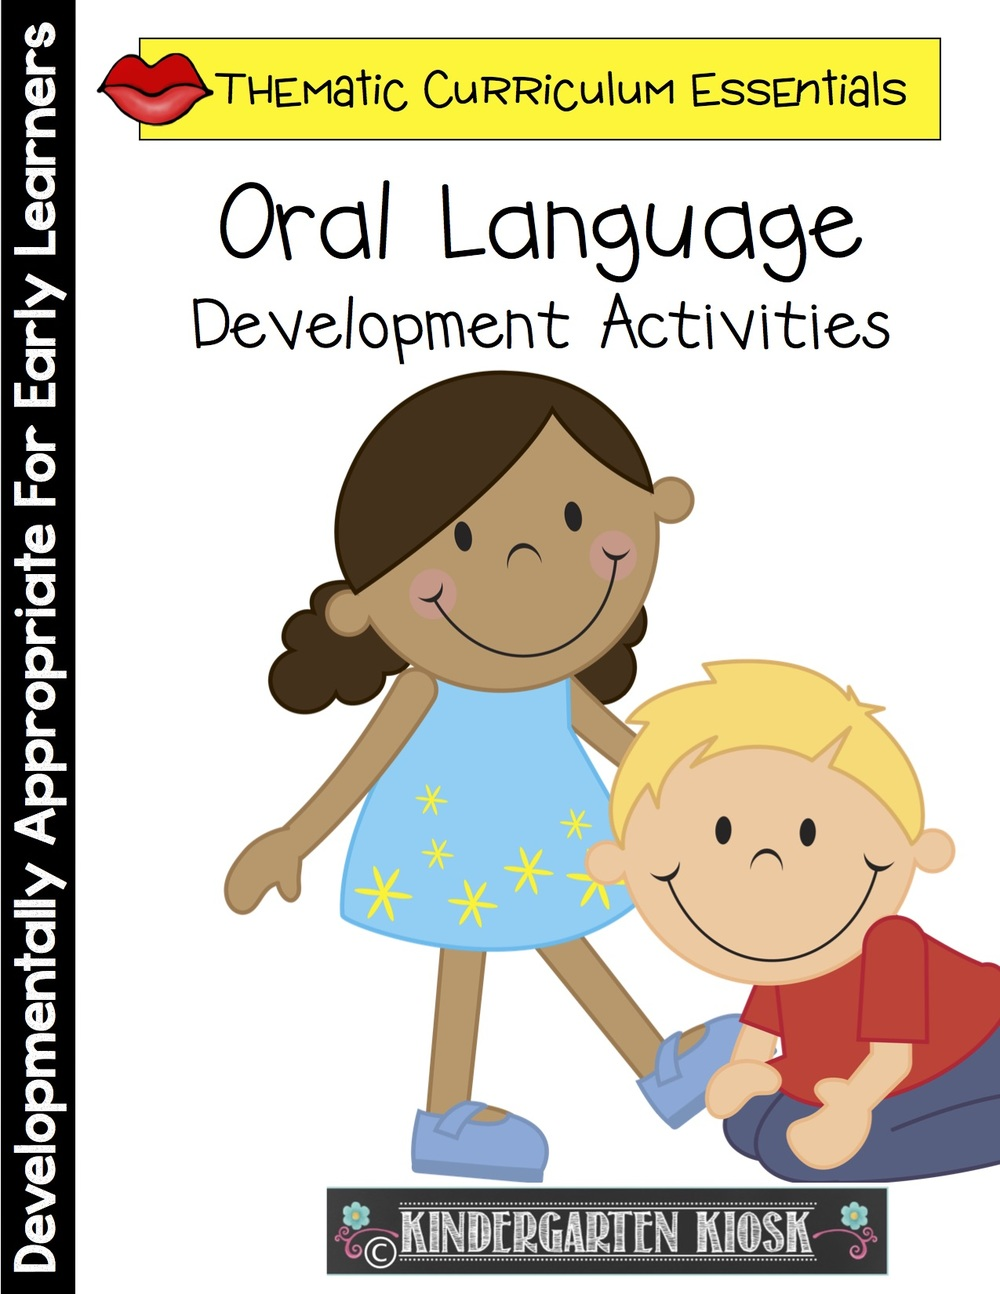 Oral Language Development Activities — Kindergarten Kiosk